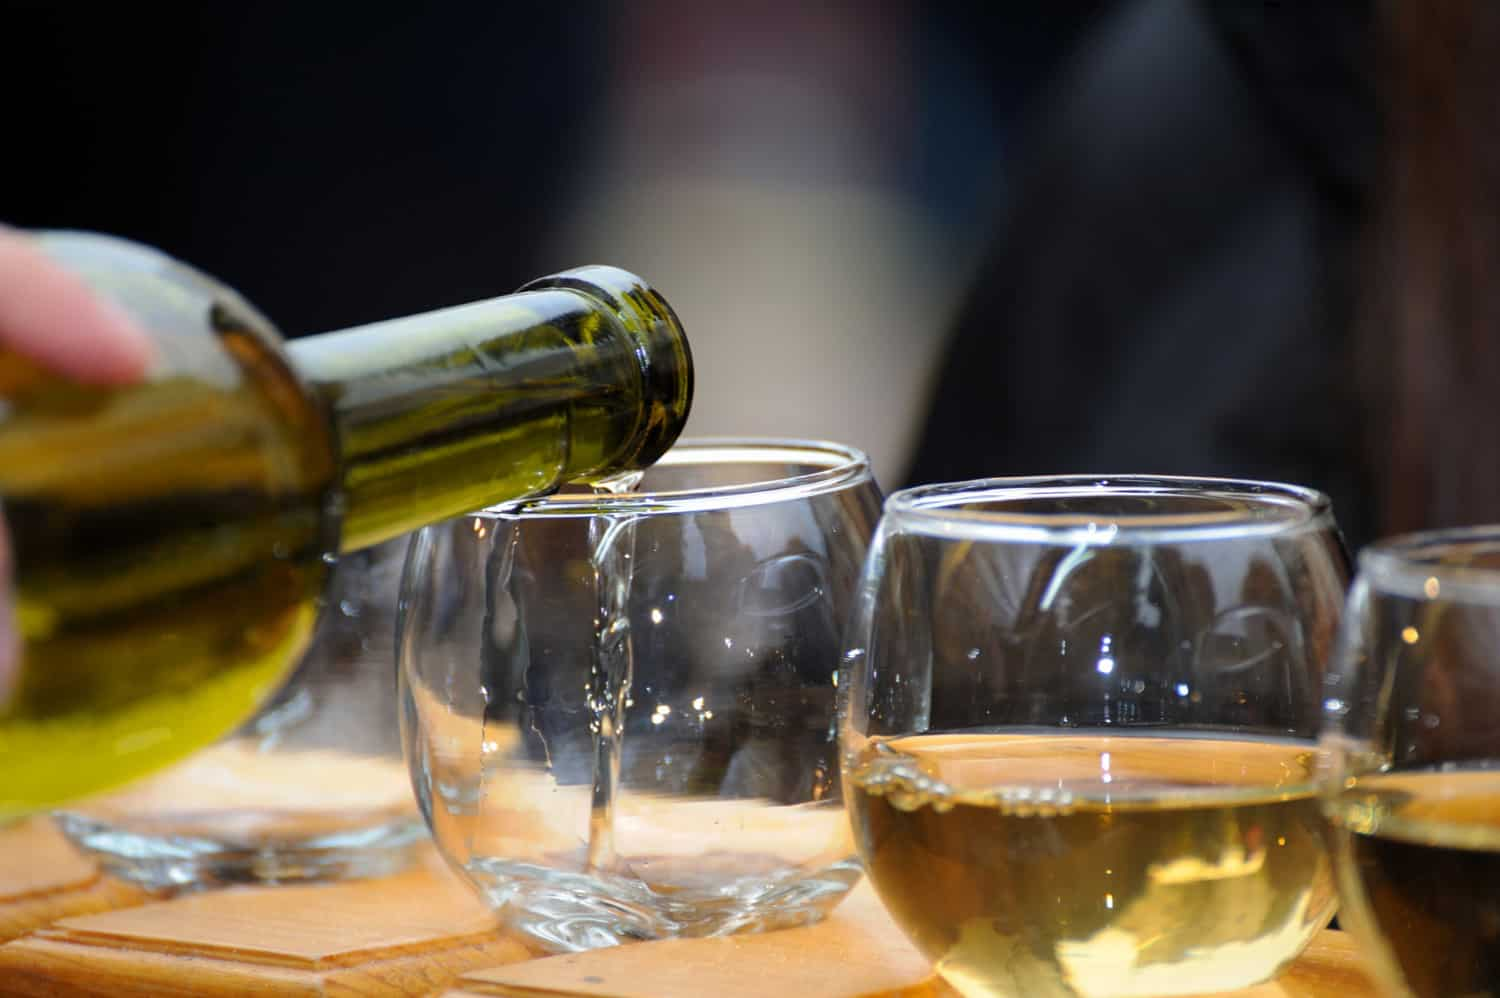 white-wine-poured-from-a-bottle-into-a-glass